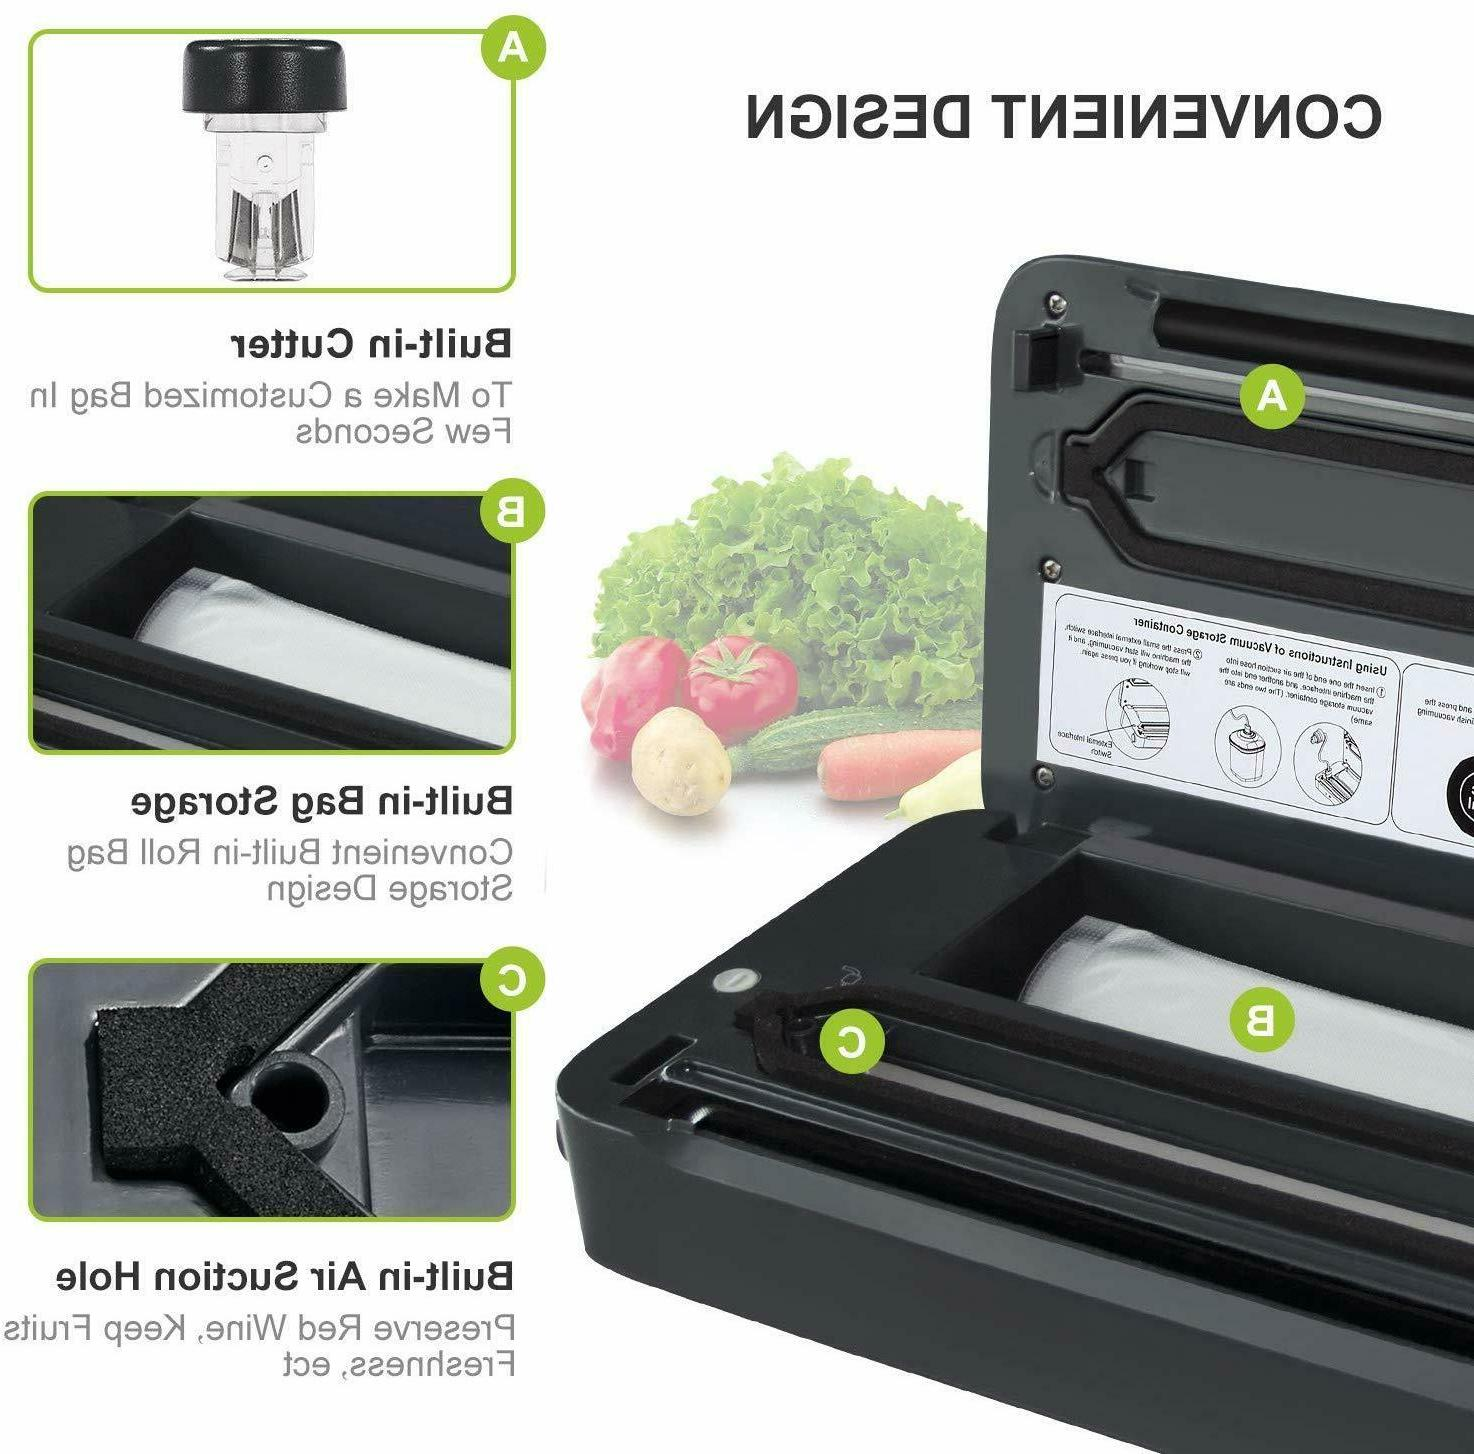 Vacuum Machine A Food Saver Sealing System Easy to Use